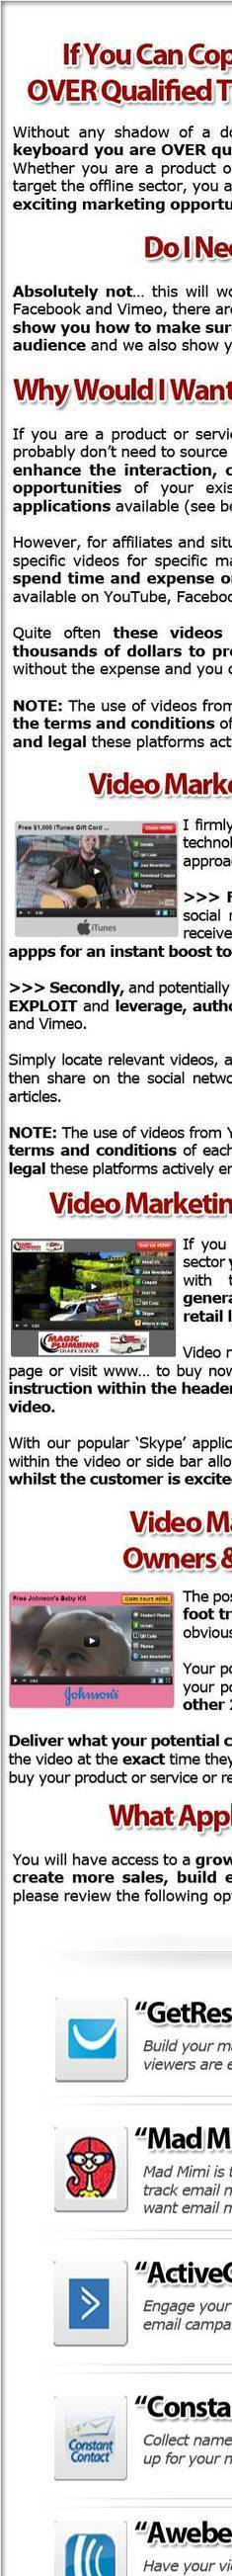 Video Jacker, Best Video Marketing For Affiliate Ever | affiliate marketing | Scoop.it